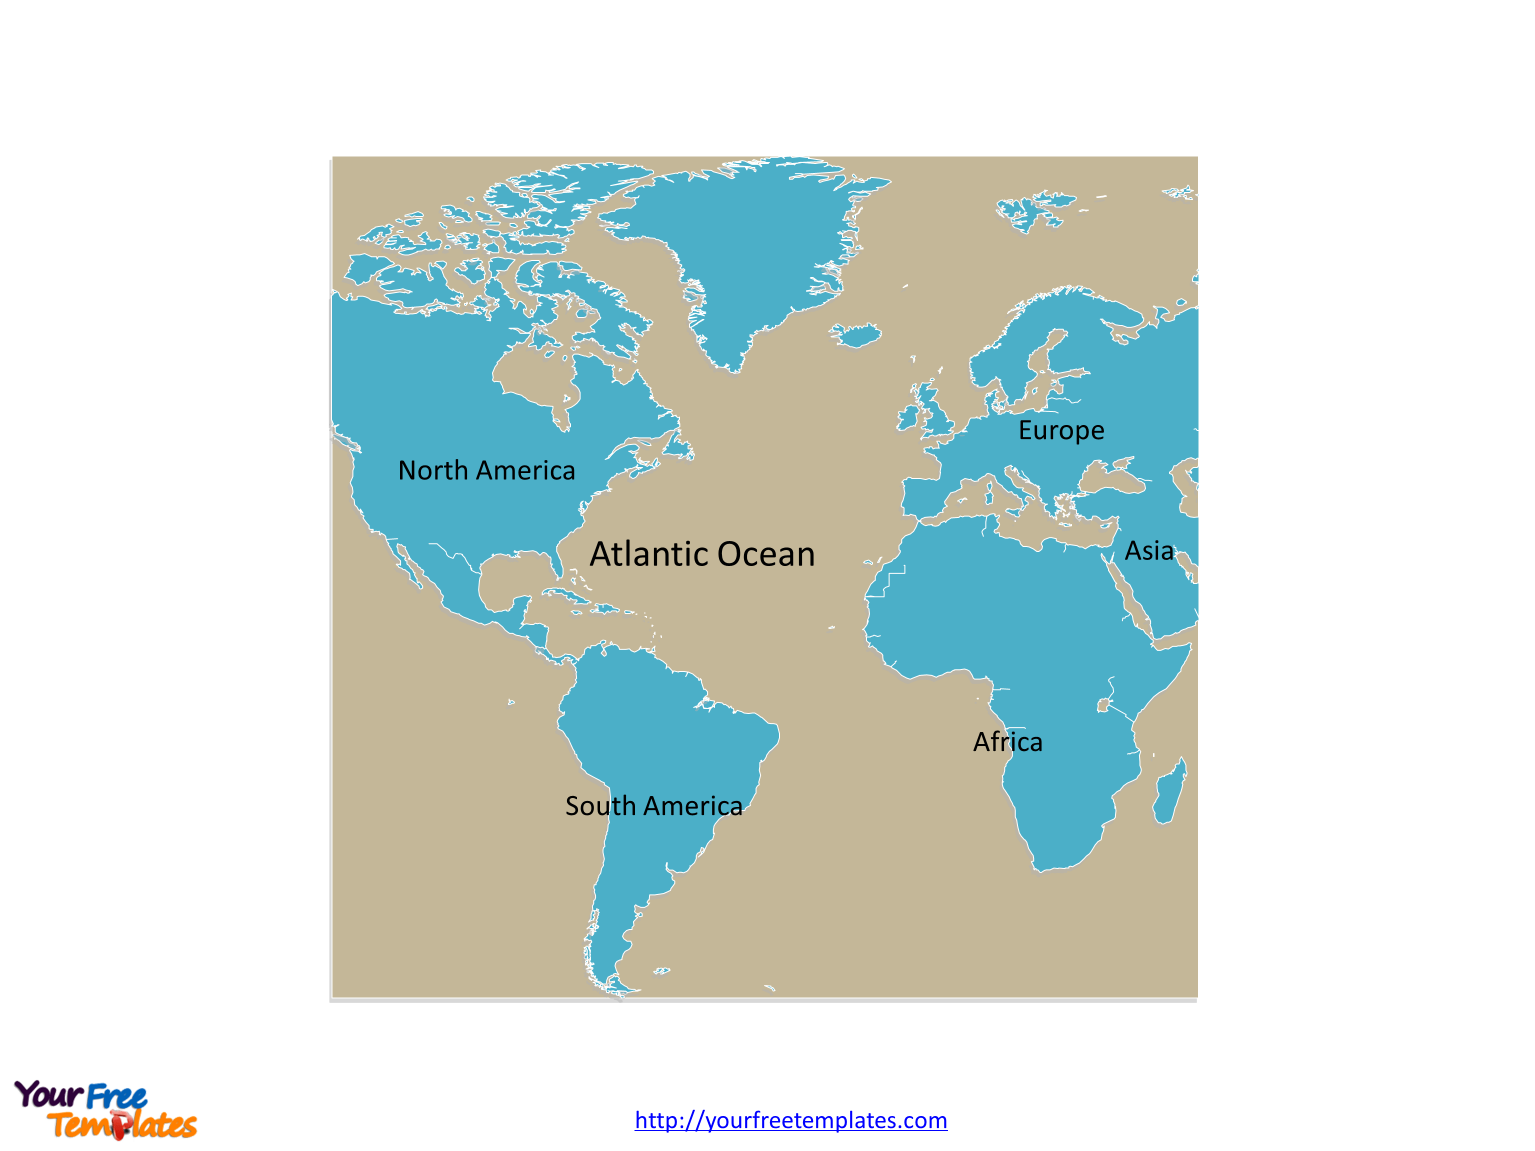 Free Atlantic Ocean Map Template Free PowerPoint Templates - World map oceans labeled